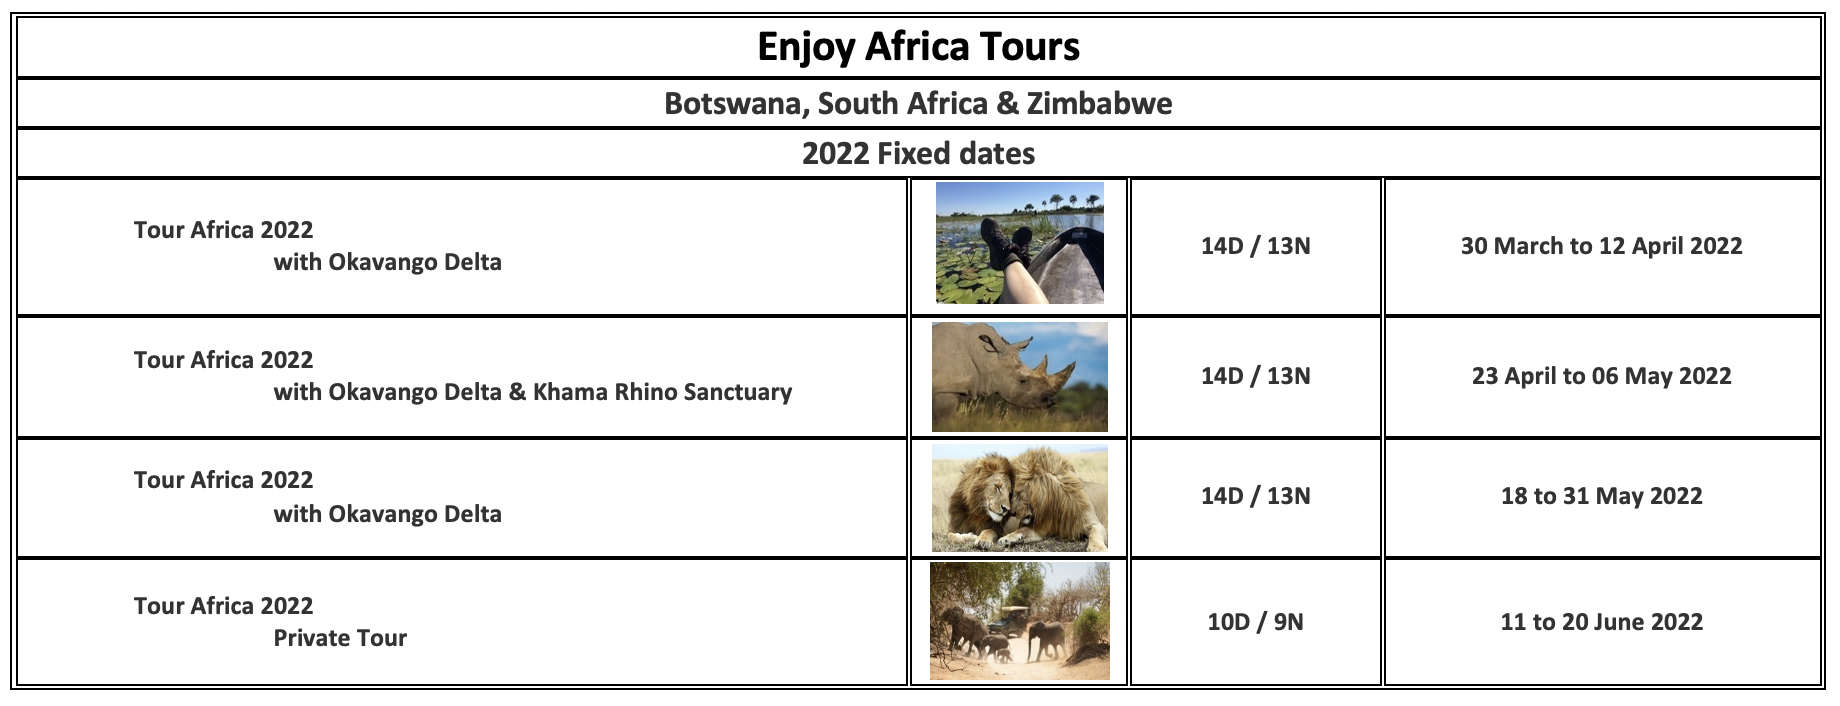 Enjoy Africa Tours 2022 English